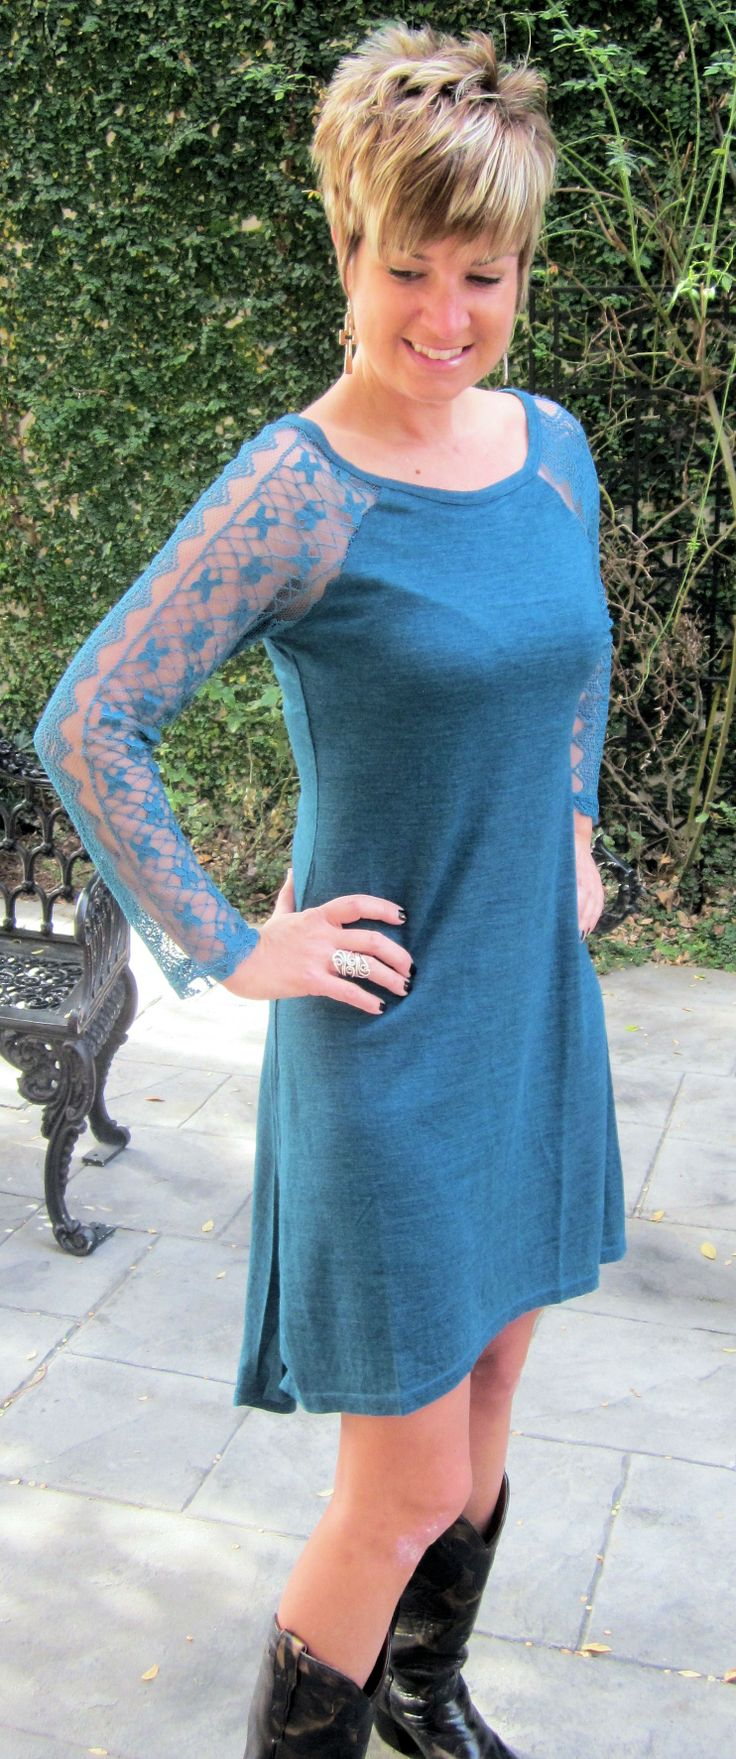 COUNTRY CONCERT DRESS!!$38  WWW.WHYNOTHAUTEPINK.COM - wish I were thin & evenly proportioned enough to pull this off...